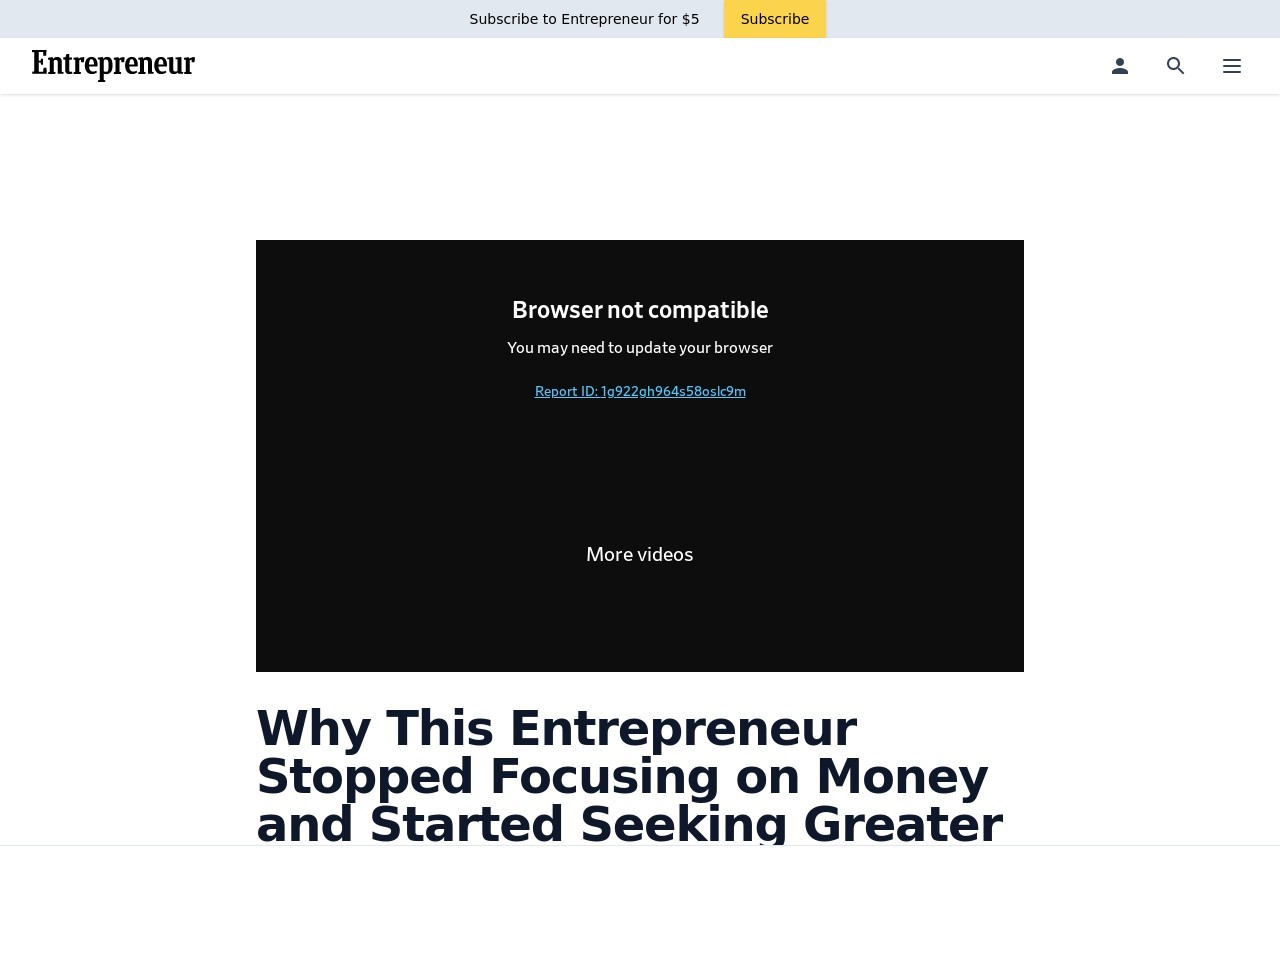 Why This Entrepreneur Stopped Focusing on Money and Started Seeking Greater Human Connection